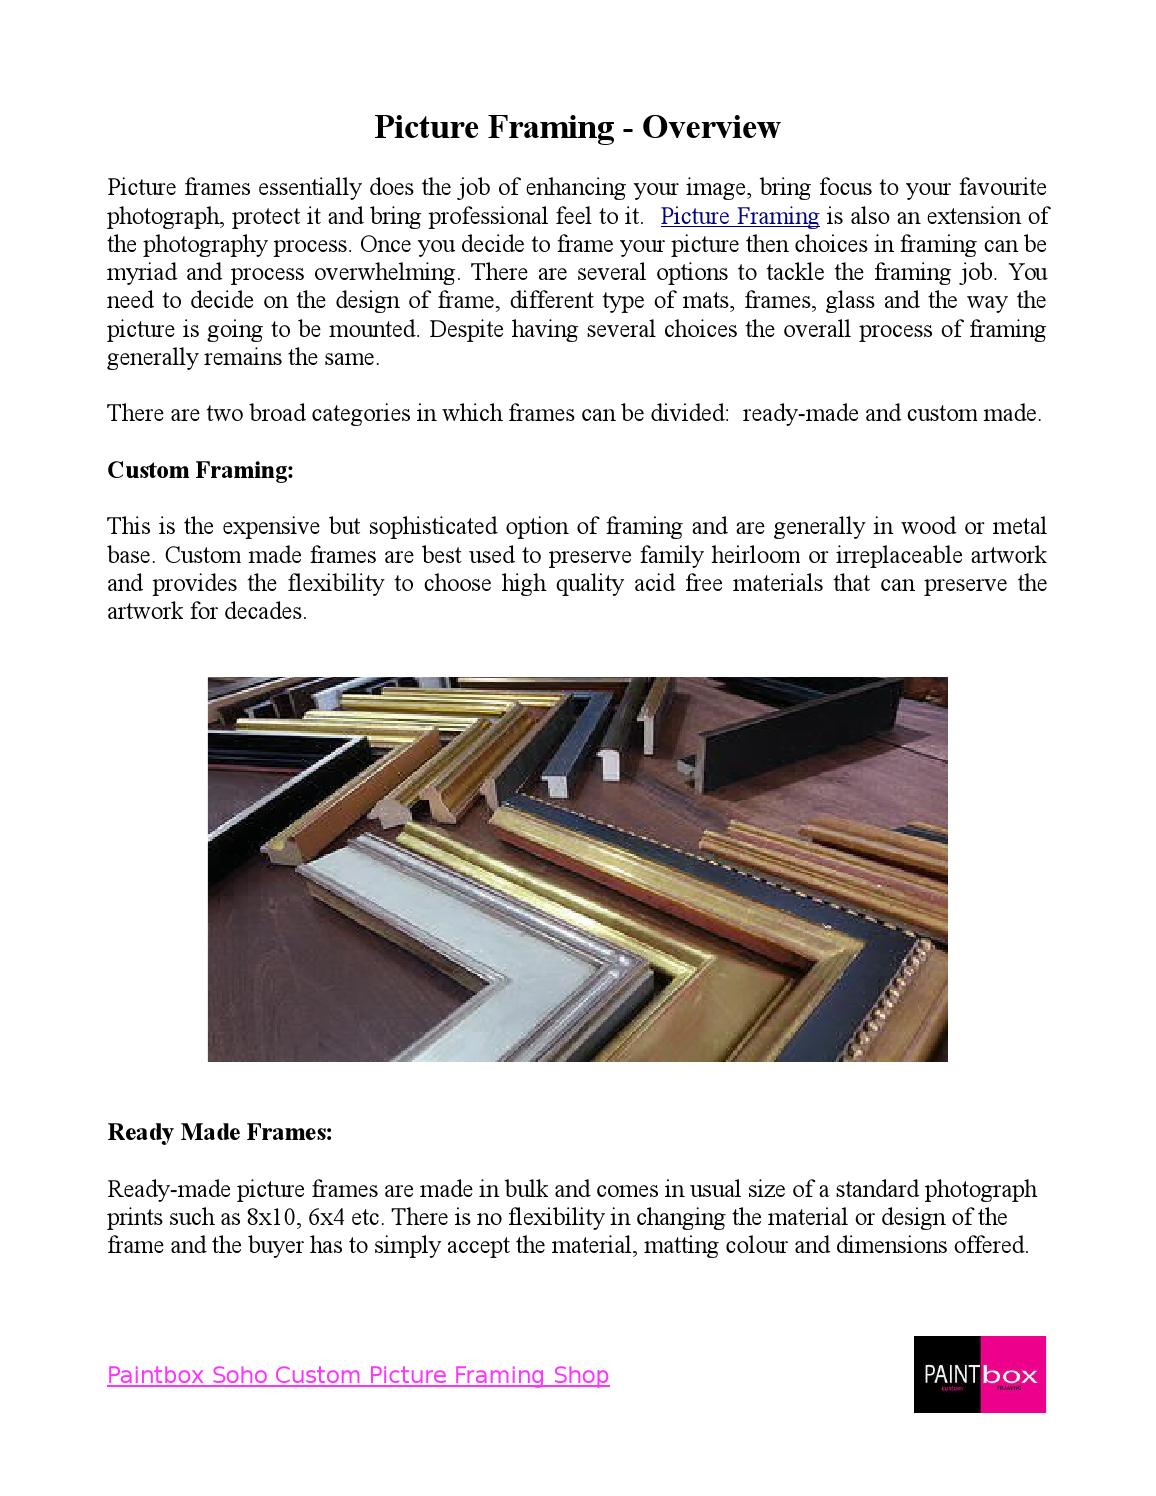 Basic Information For Picture Frames By Paintbox Soho Issuu